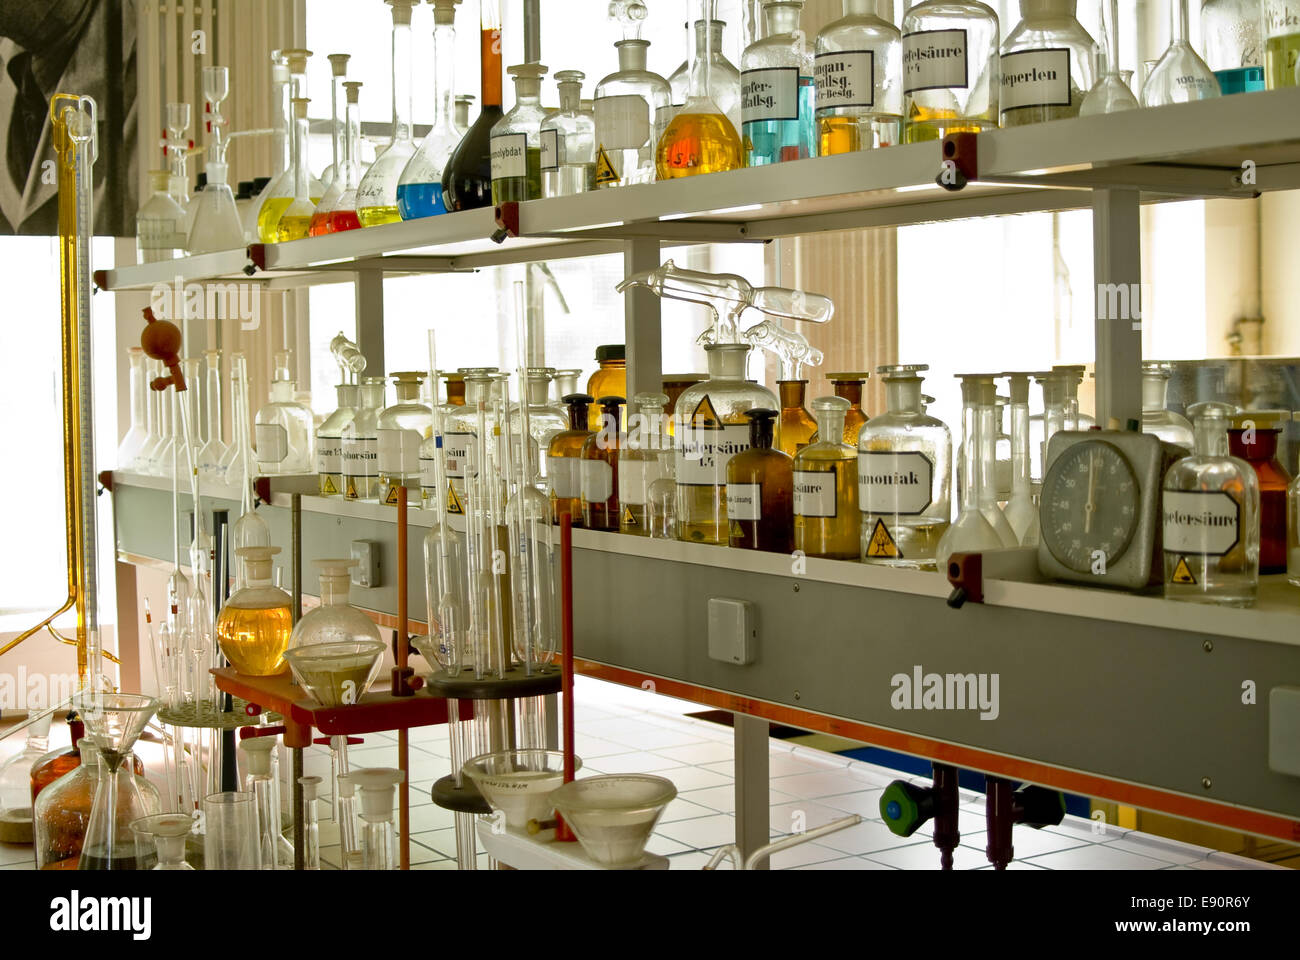 Laboratoire chimique Photo Stock